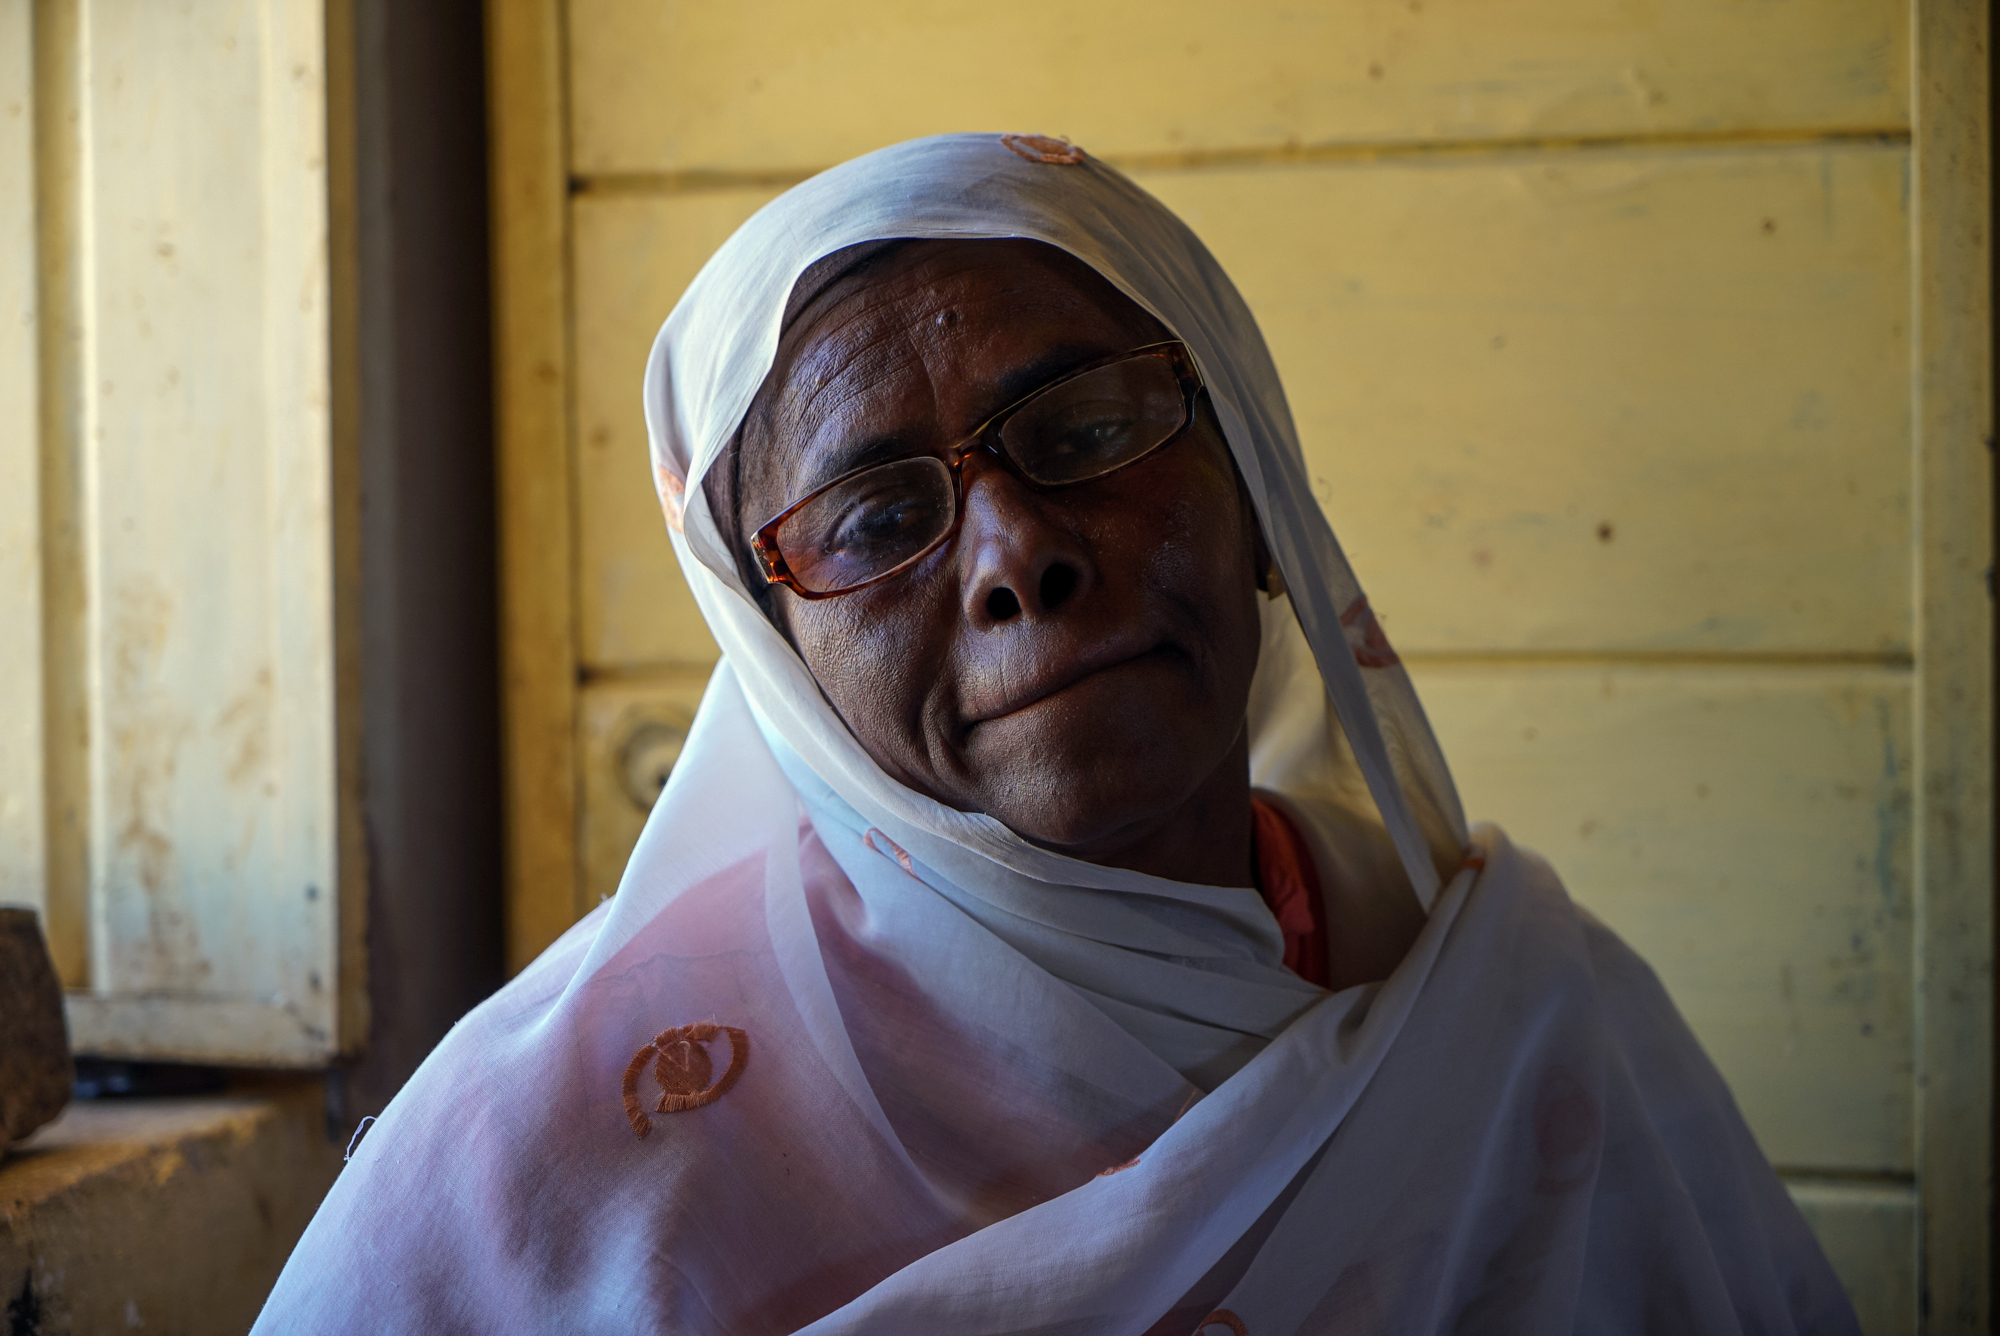 Fouzia works at the entrance of the site. 'Both Sudanese and foreigners visit the pyramids,' she said. 'But in the past, more people used to come. This year they weren't so many. Maybe all the news about Ebola and other wars in Africa scared the foreigners away.' [Sorin Furcoi/Al Jazeera]